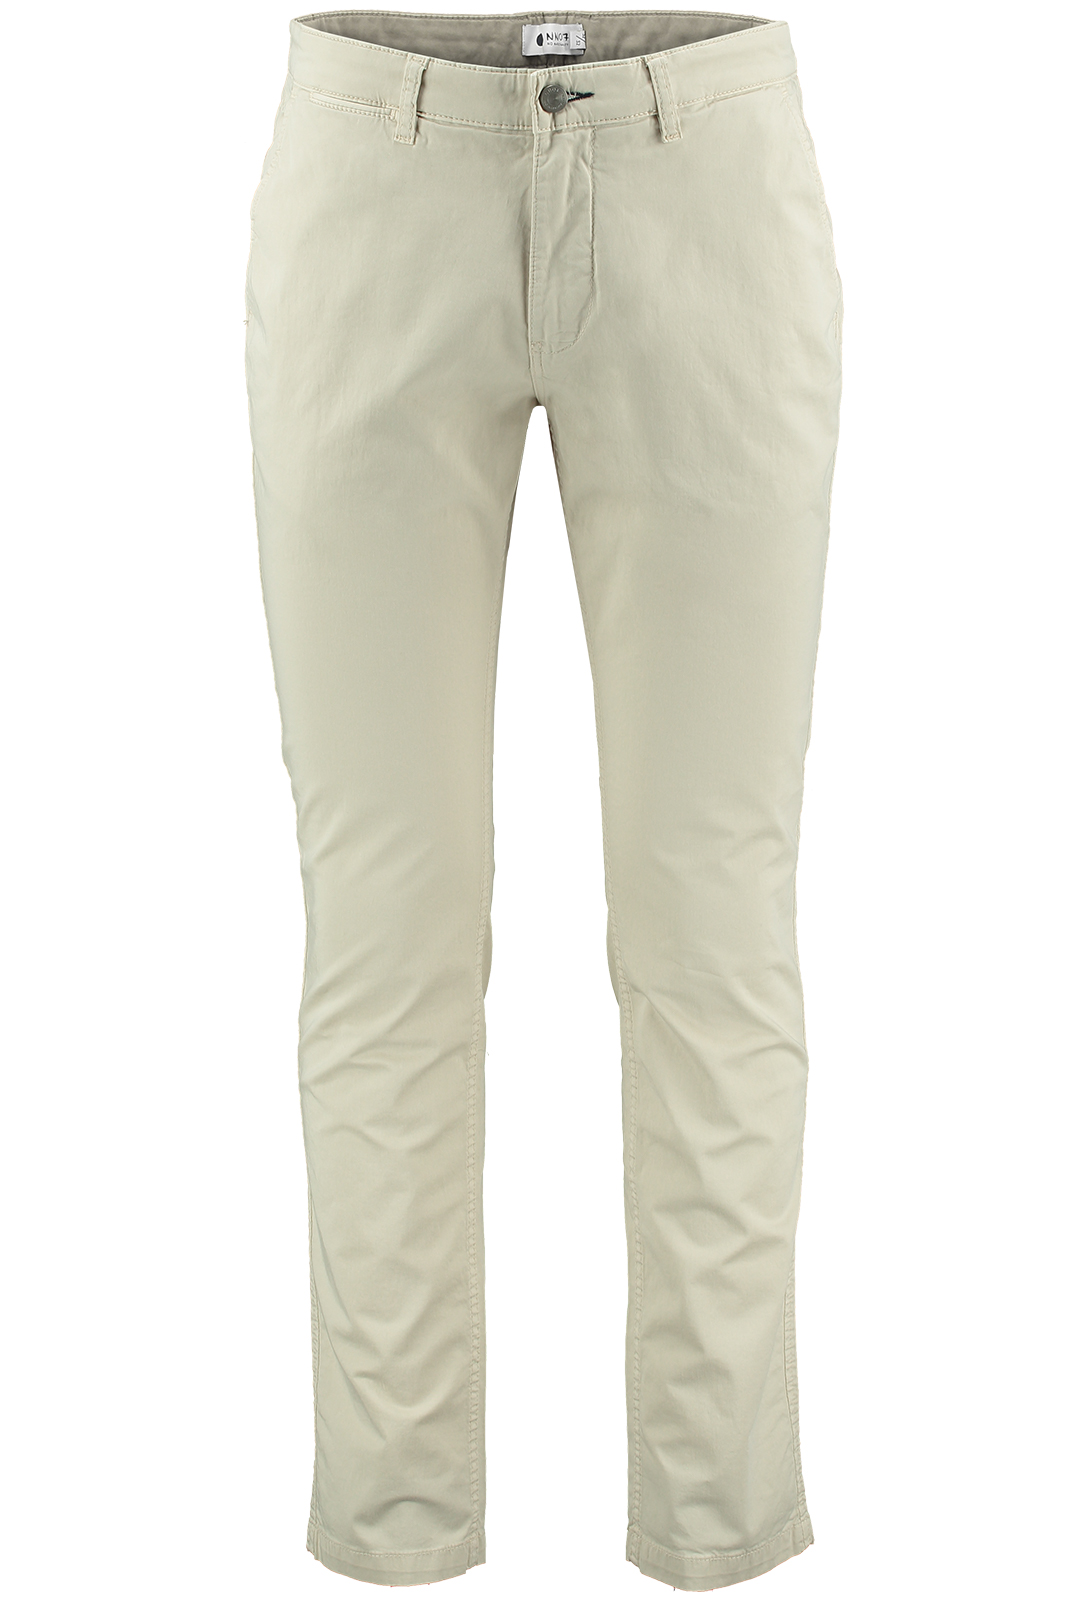 NN07 Chinos HERR Outlet